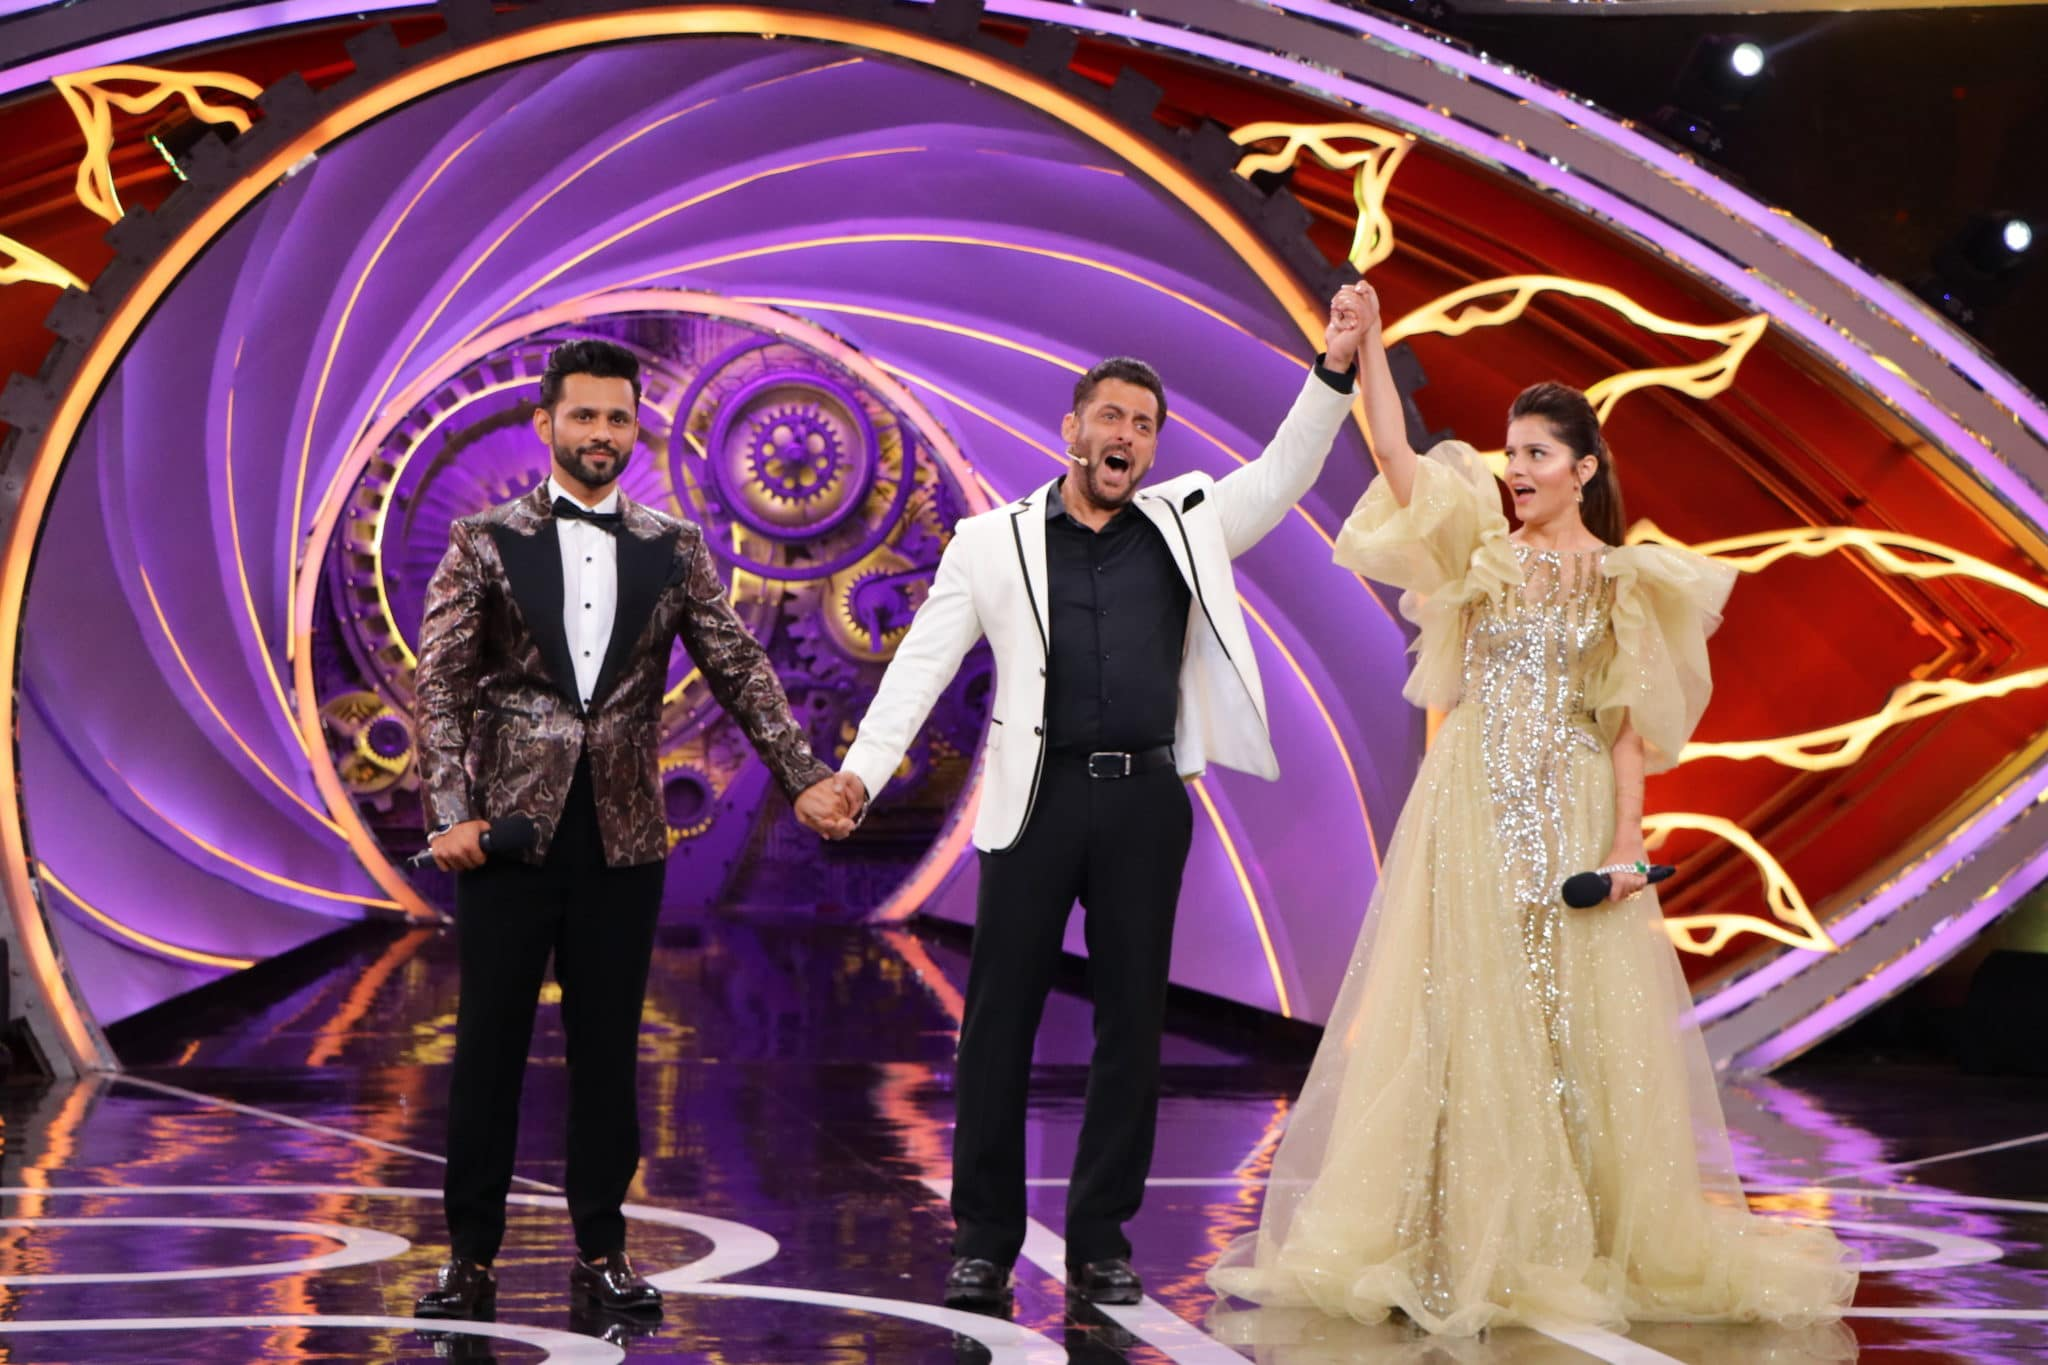 Salman-Khan-declares-Rubina-Dilaik-as-winner-of-Bigg-Boss-14-1-1-scaled.jpg